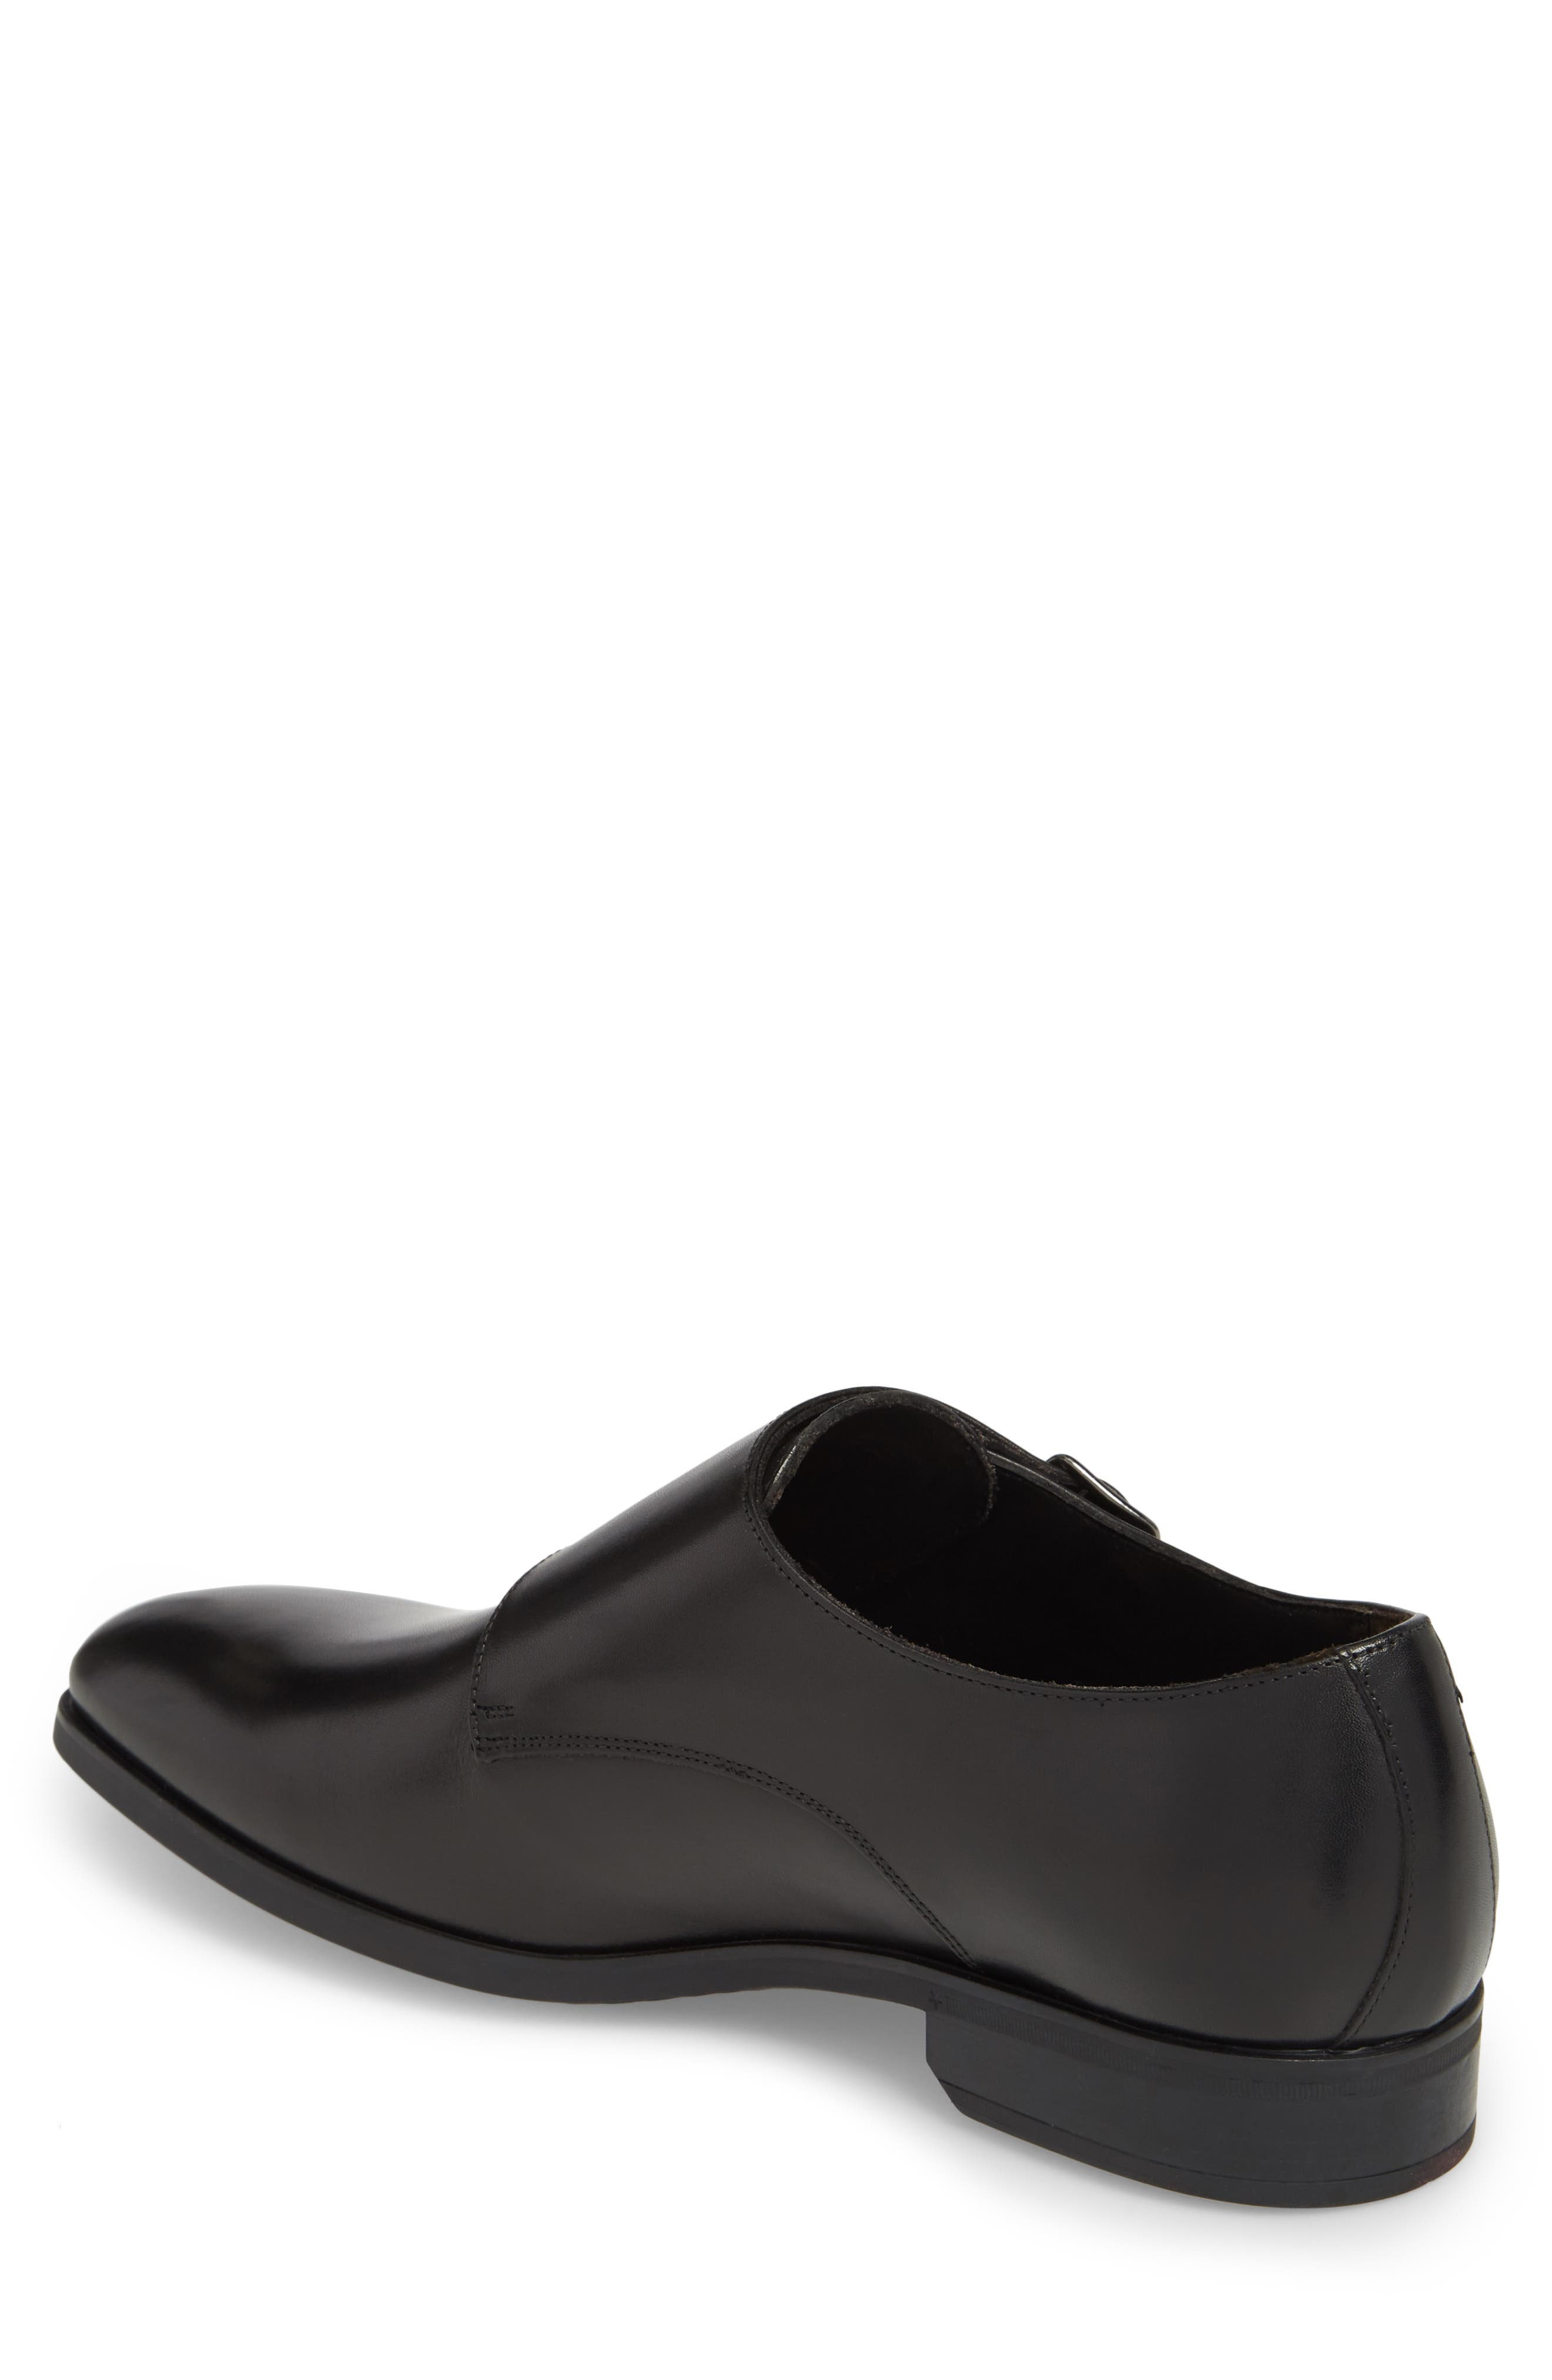 TO BOOT NEW YORK, Benjamin Double Monk Strap Shoe, Alternate thumbnail 2, color, 002